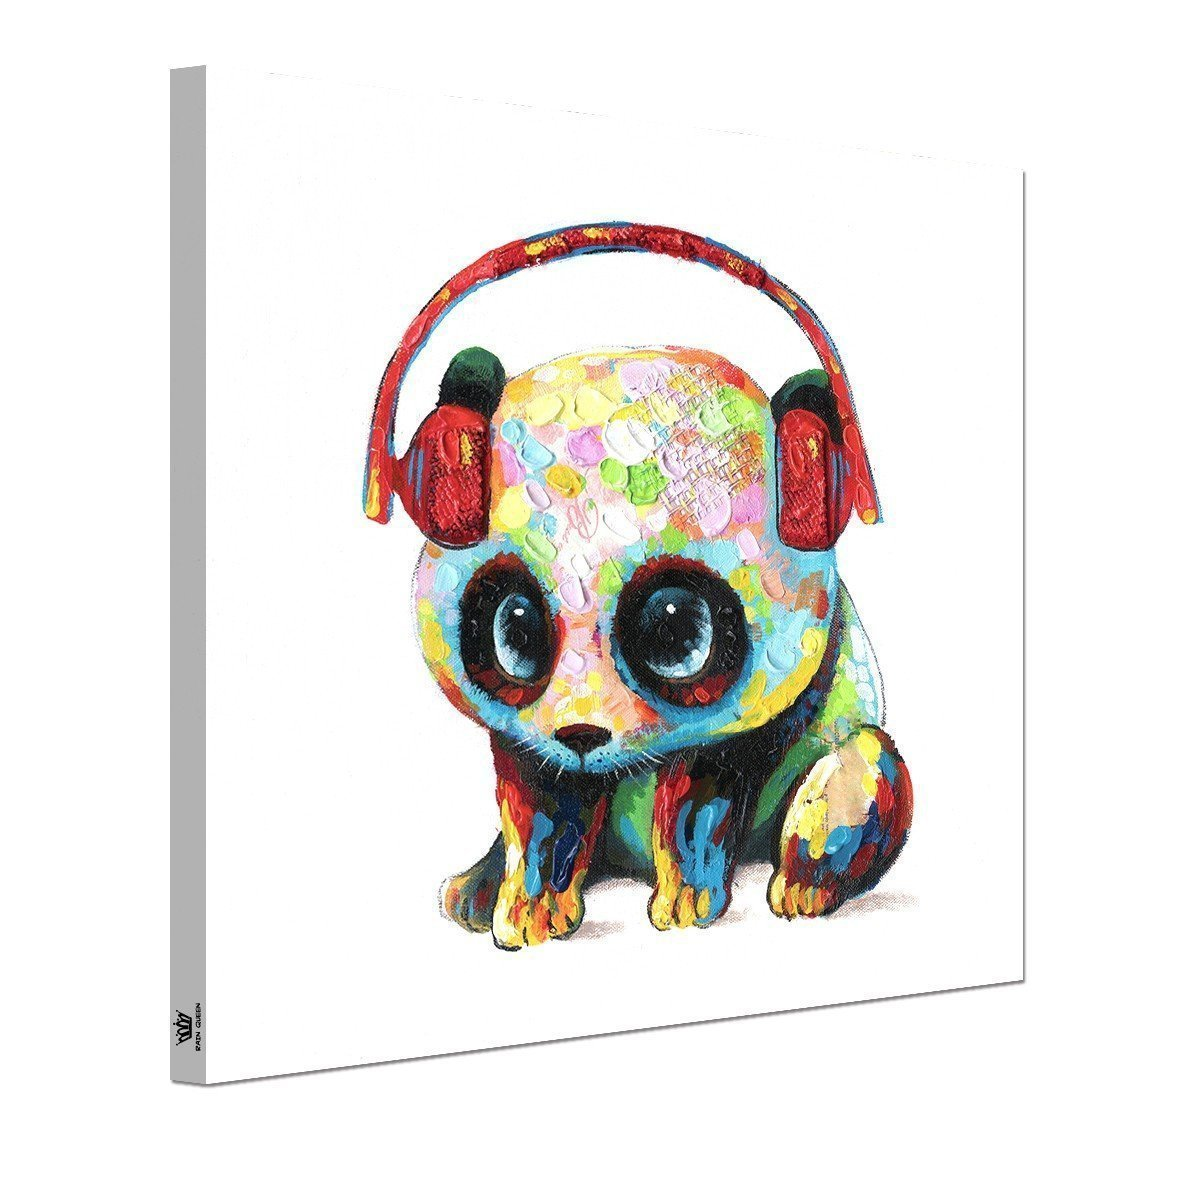 Animals Canvas Wall Art, Modern Animals Painting Music Panda Art Oil Painting Prints on Canvas, Stretched &Framed, Ideal Home Decor for Kitchen, Kids Bedroom, Living Room - Ready to Hang 20X20 inch